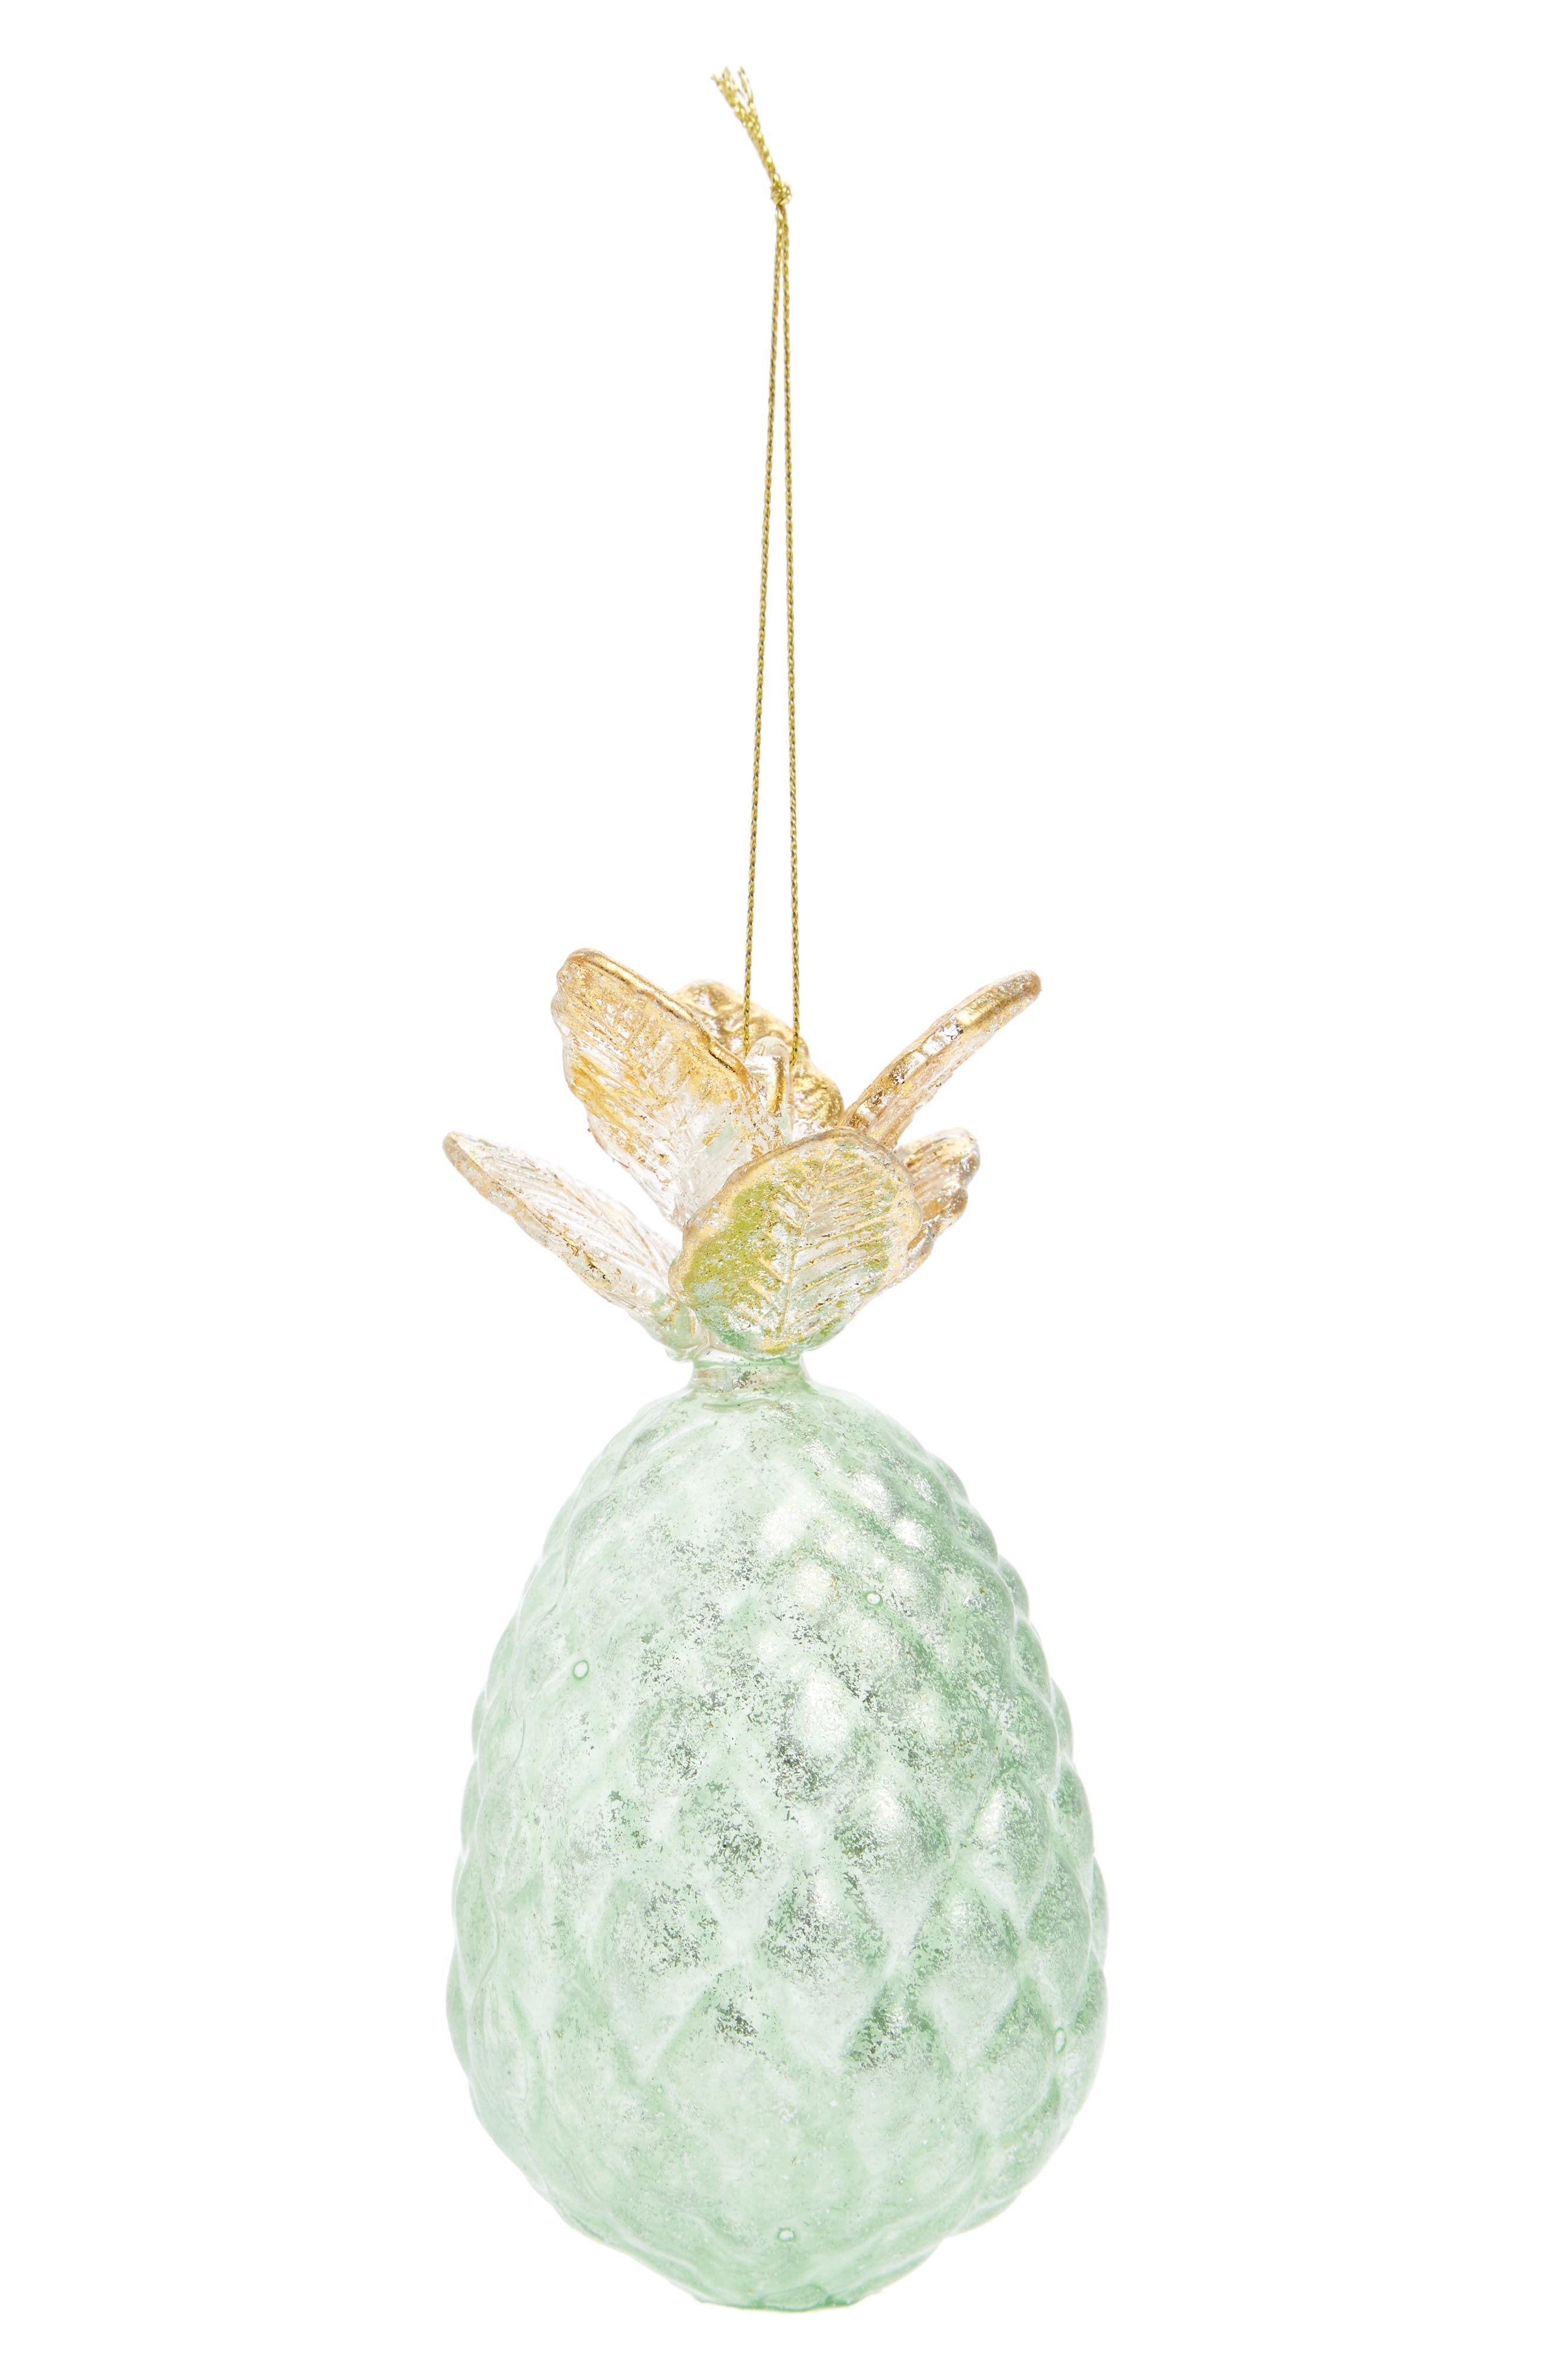 Nordstrom at Home Pineapple Glass Ornament